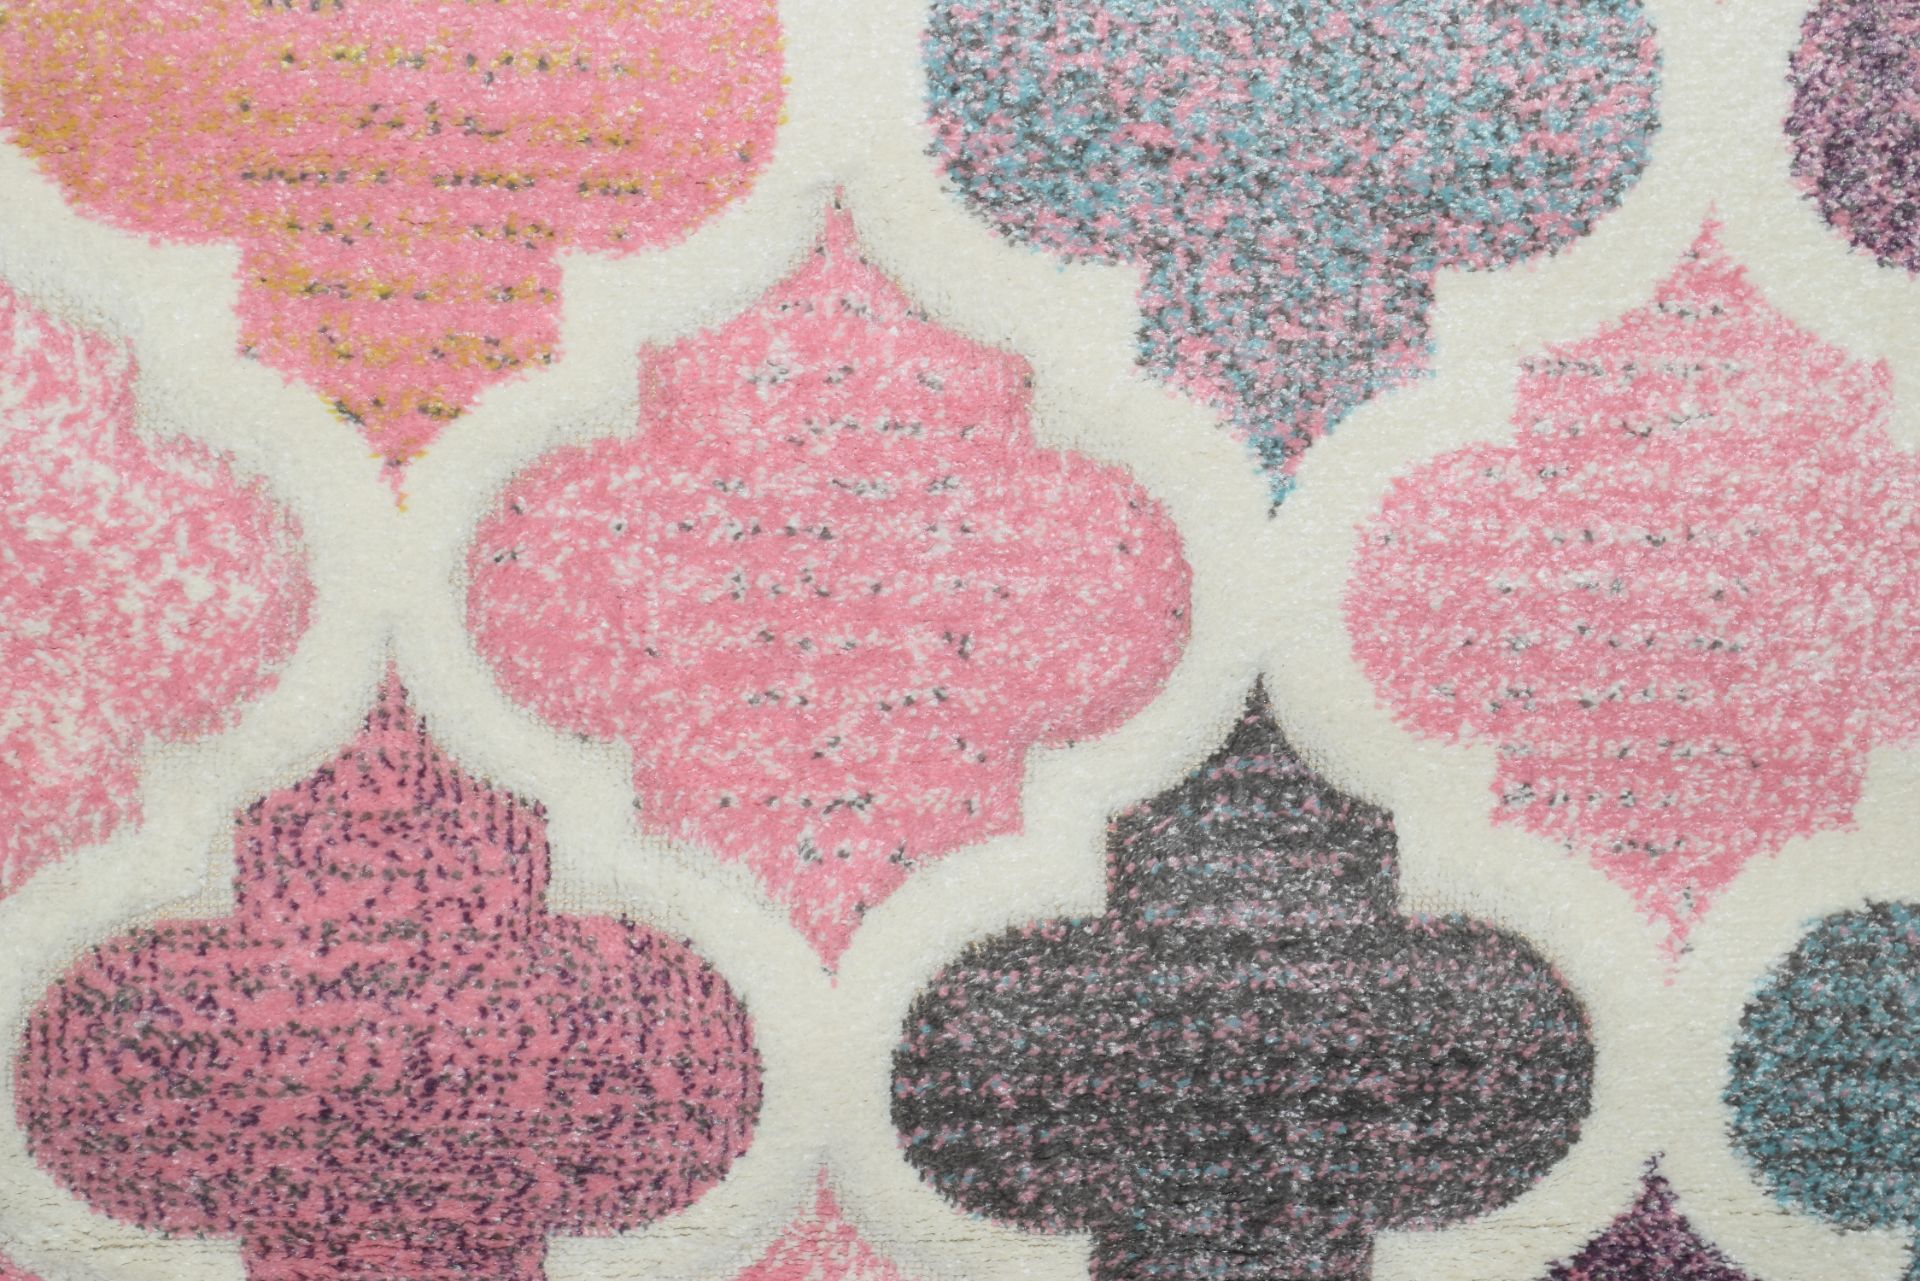 Macclesfield pink rug, 120 x 170cm - Image 2 of 2